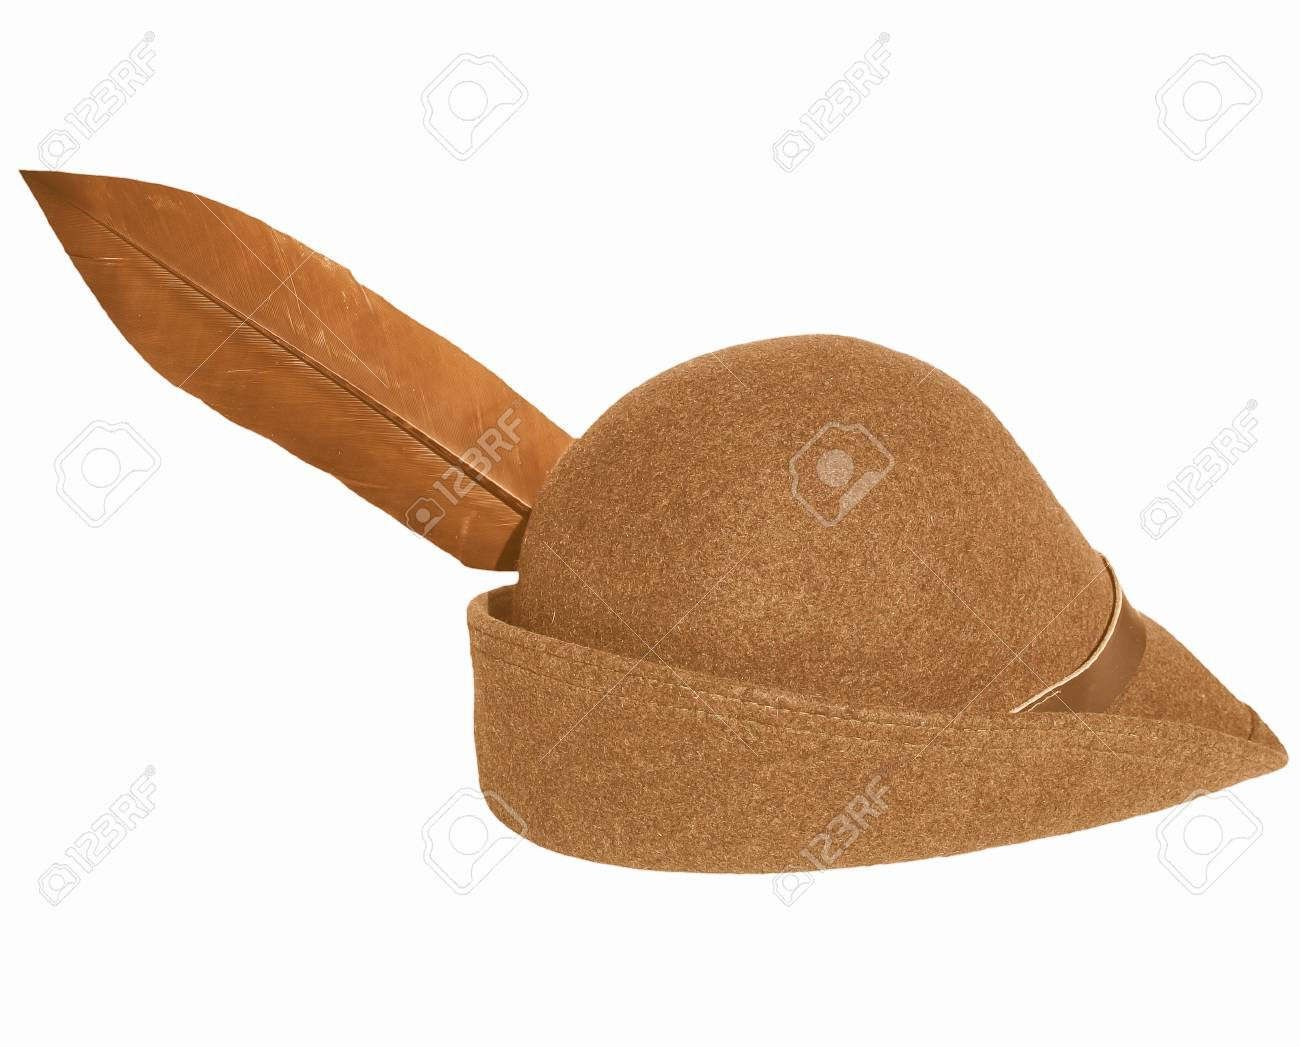 c9f9f0a5aa7 Stock Photo - Vintage alpine cap hat with a feather - isolated over white  background vintage